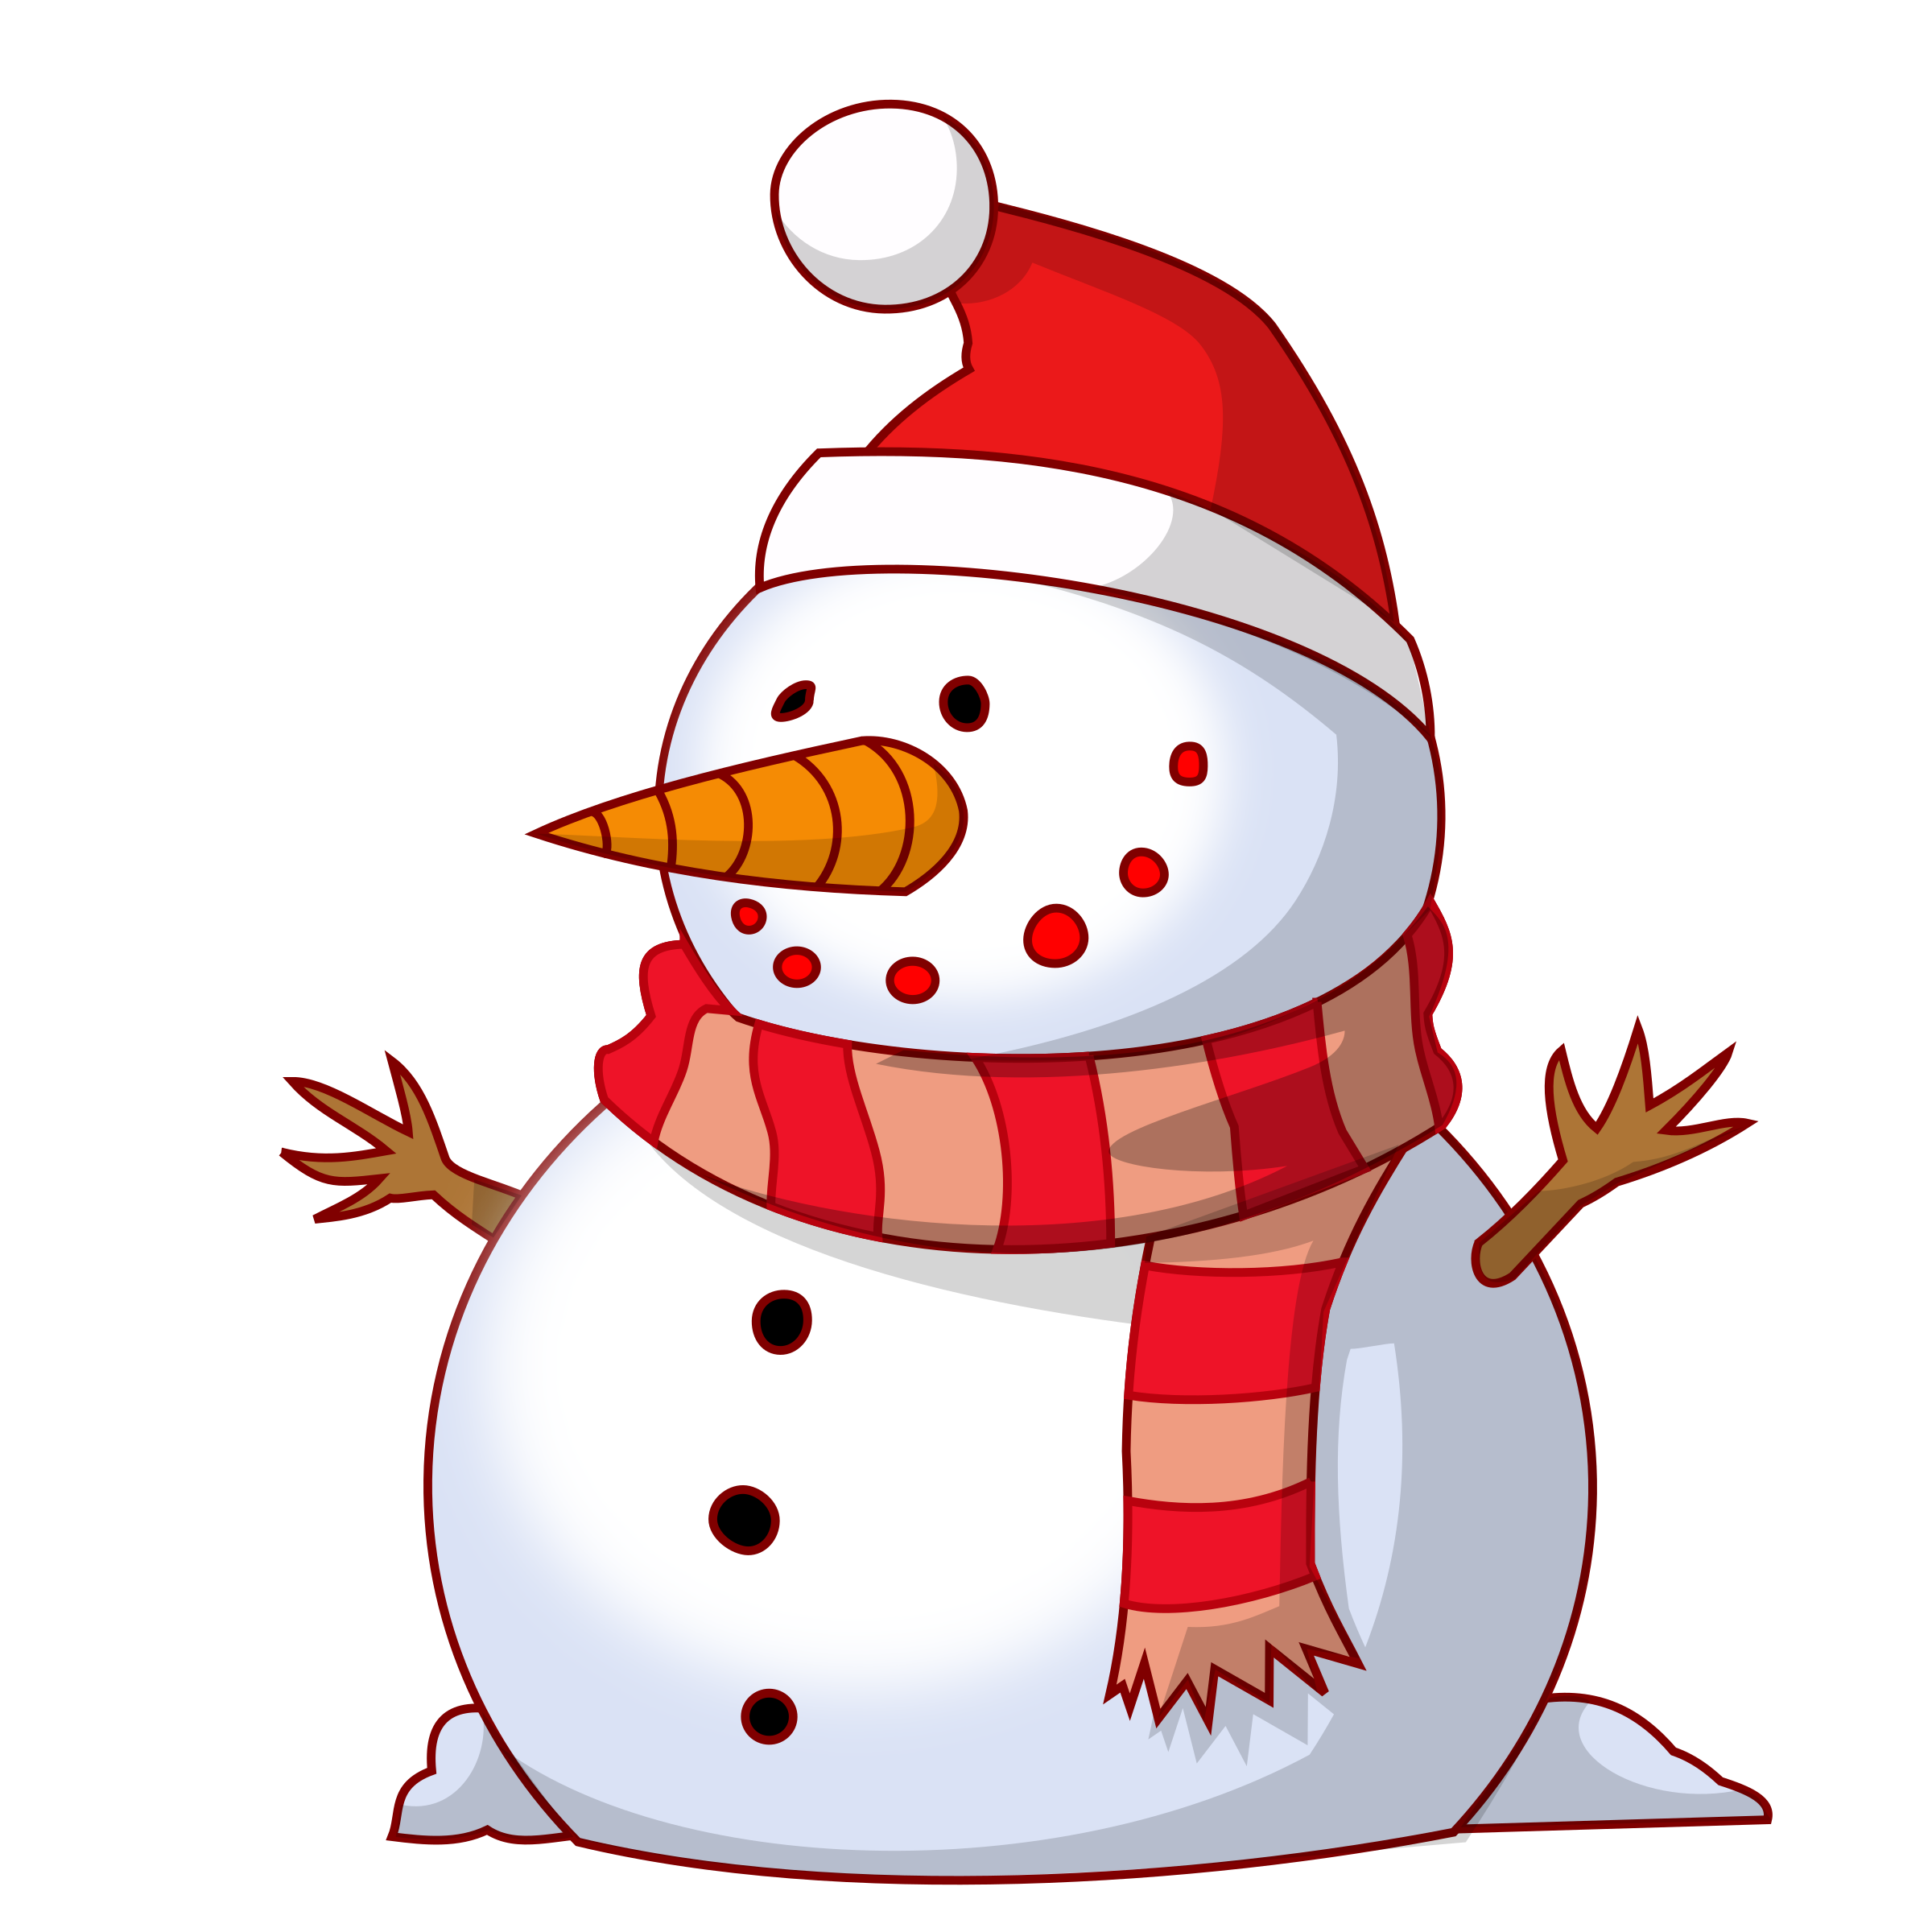 clipart snowman rh openclipart org creative commons clip art images creative commons clip art chorus